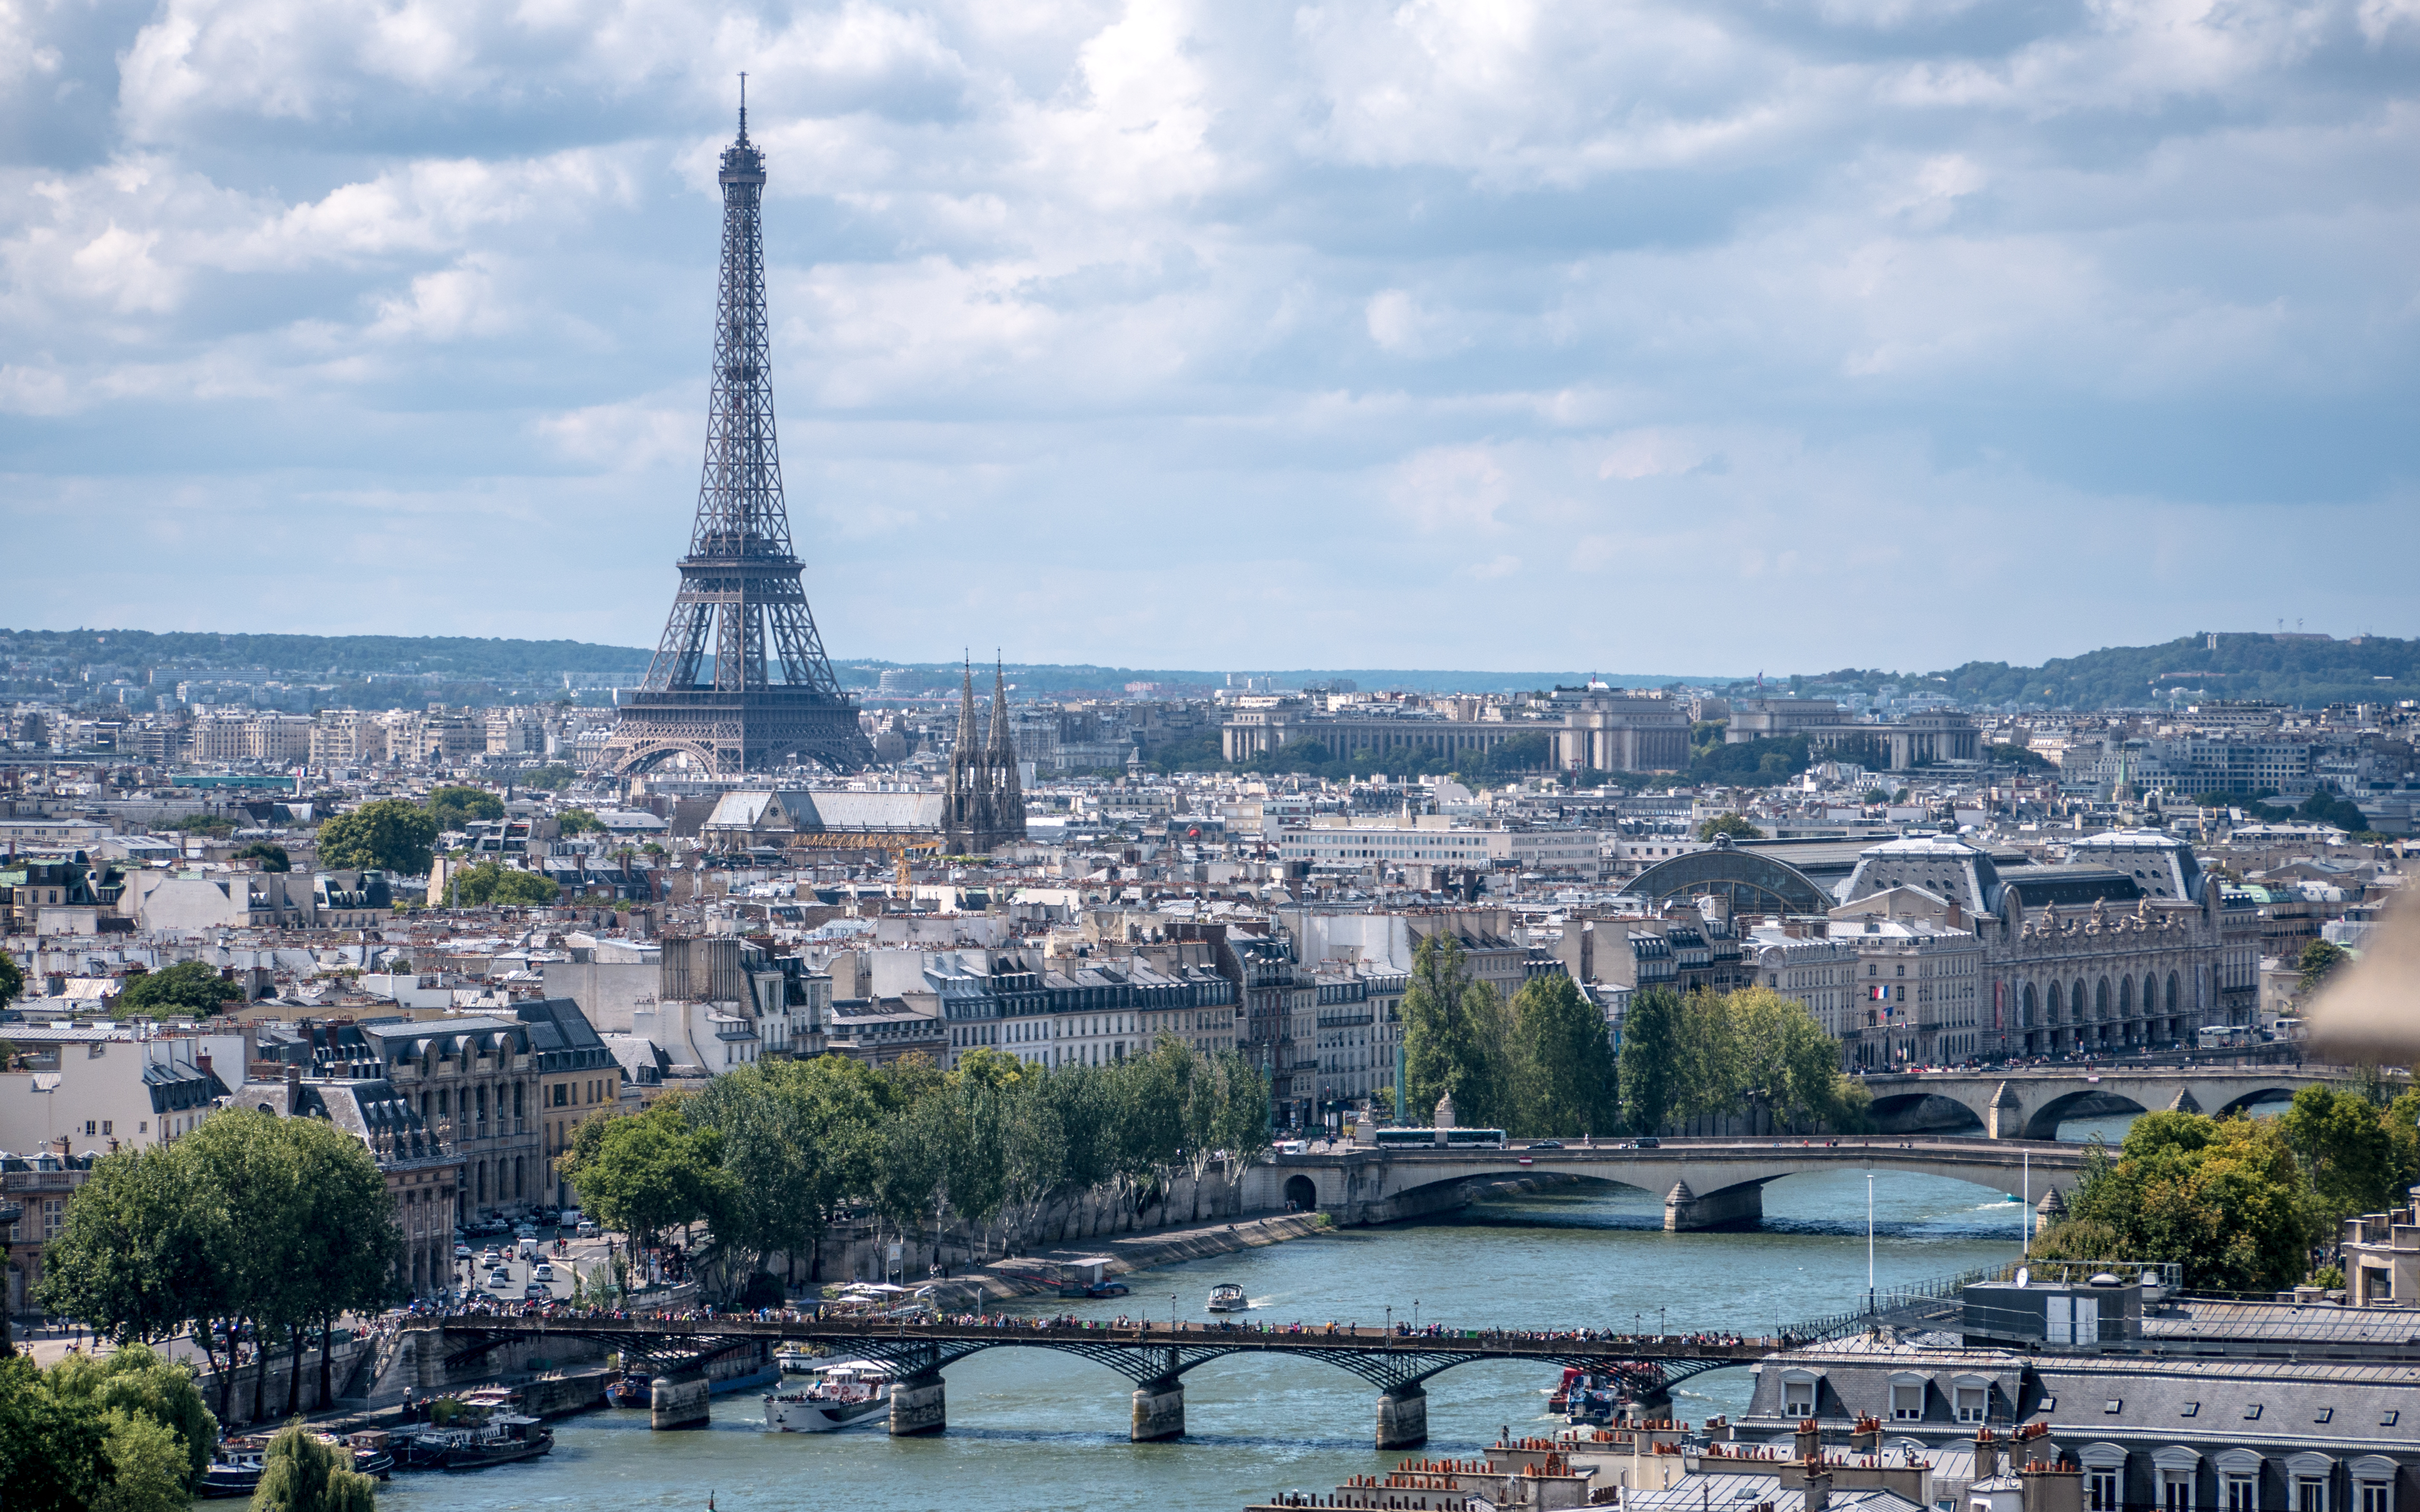 An image of Paris with the amazing Eiffel Tower to the left